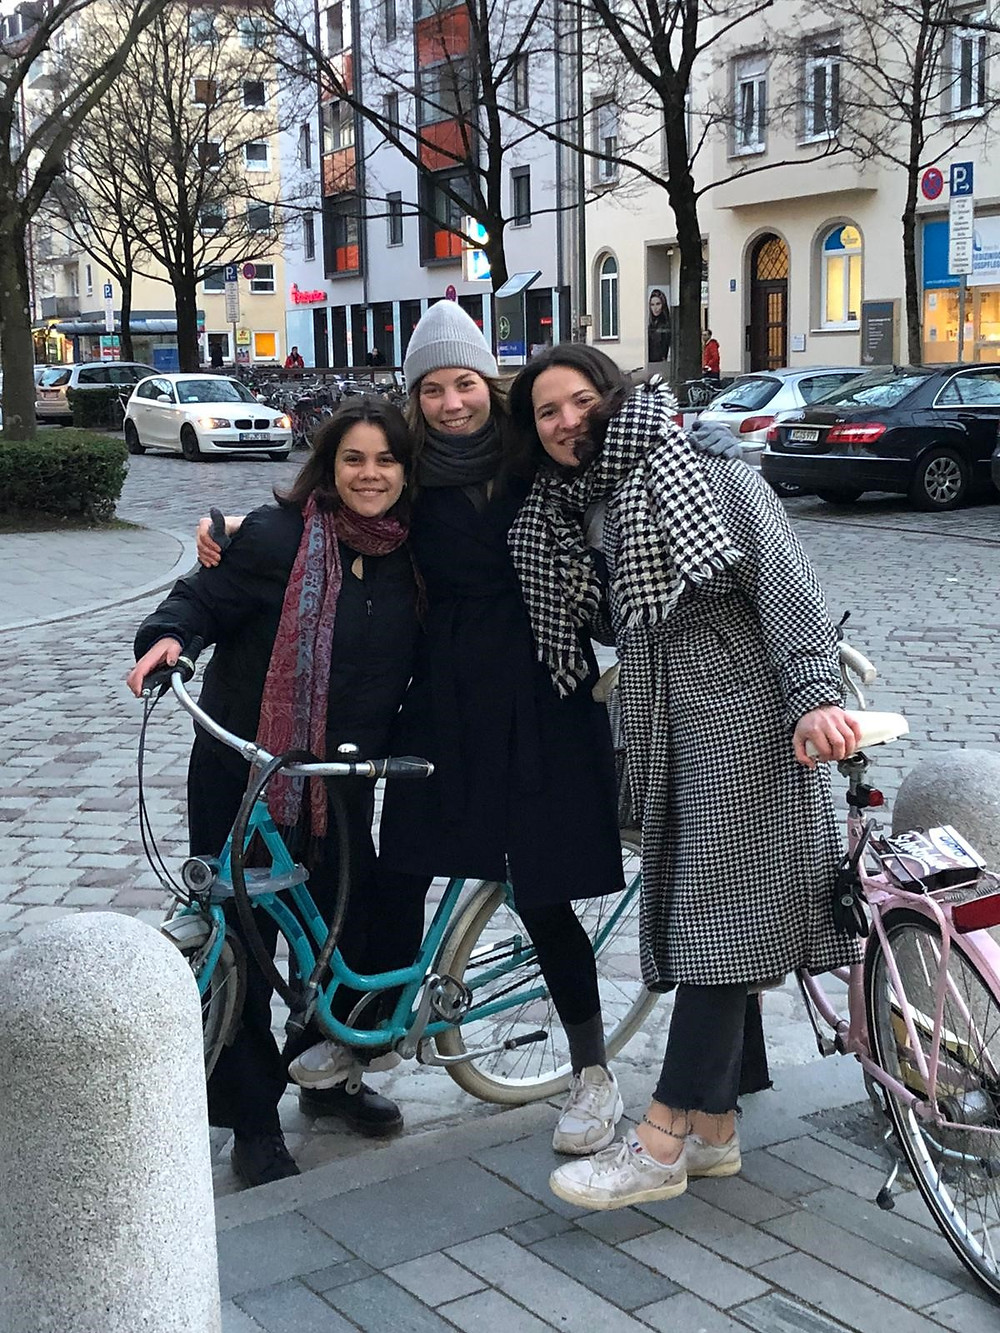 (me (on the very right) with two friends): I moved to Munich for my IVY volunteering experience and was finally able to see two friends again. We explored the city by bike (of course, we were all tested Covid-negative beforehand )